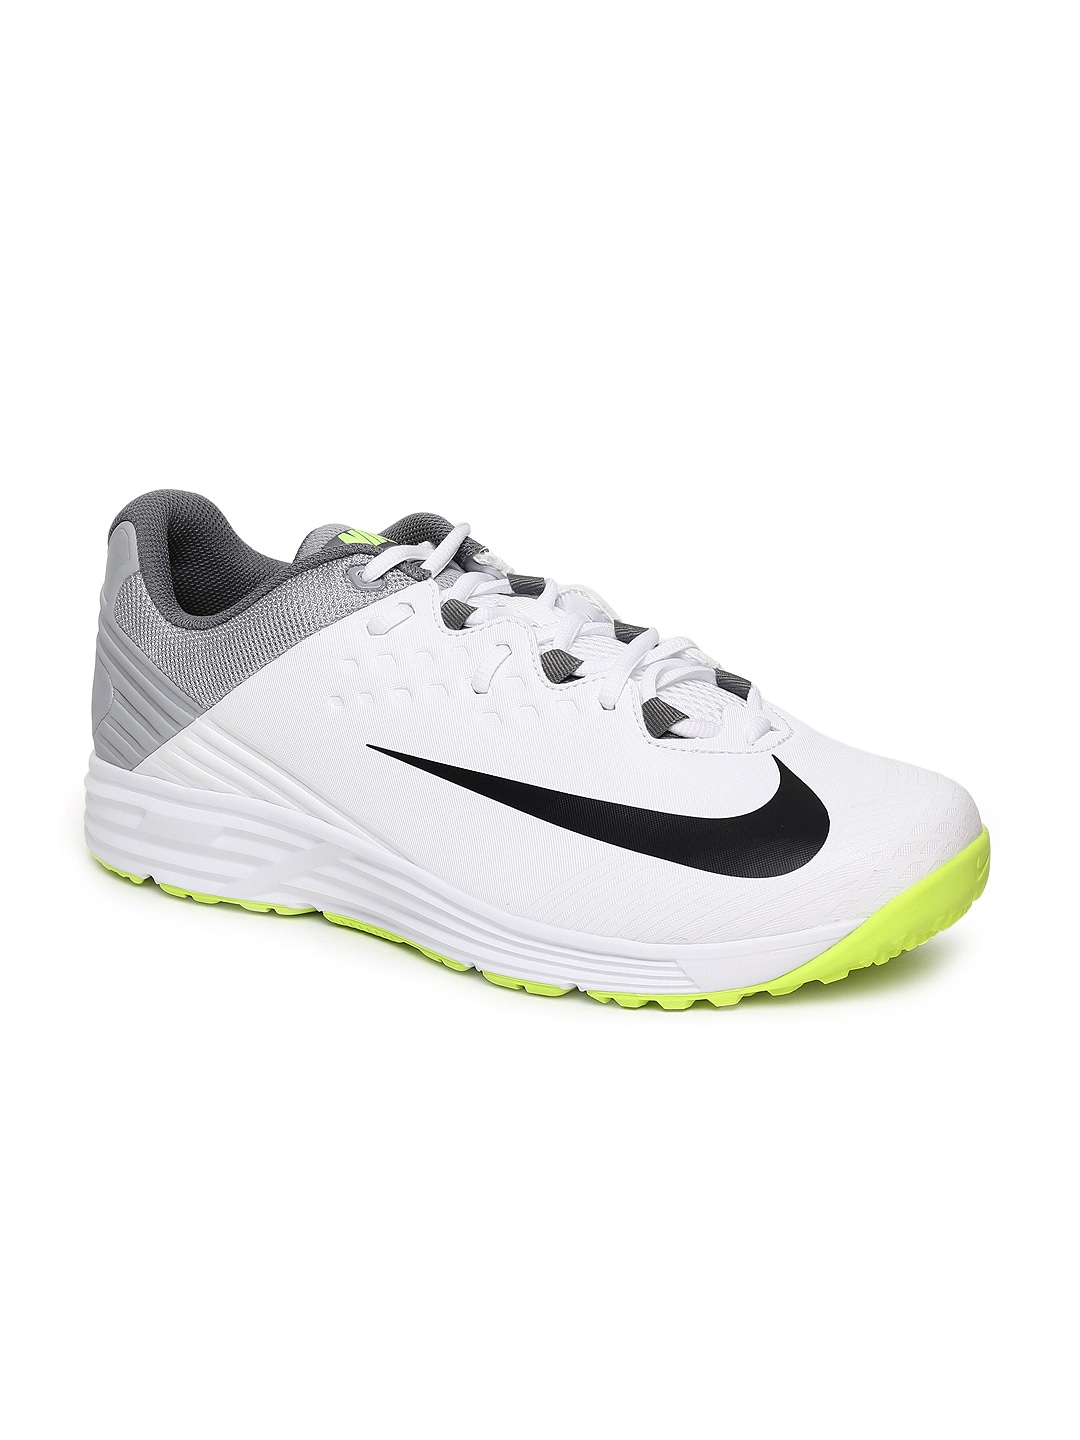 502d81db0fe555 Nike Potential White Cricket for Men online in India at Best price ...